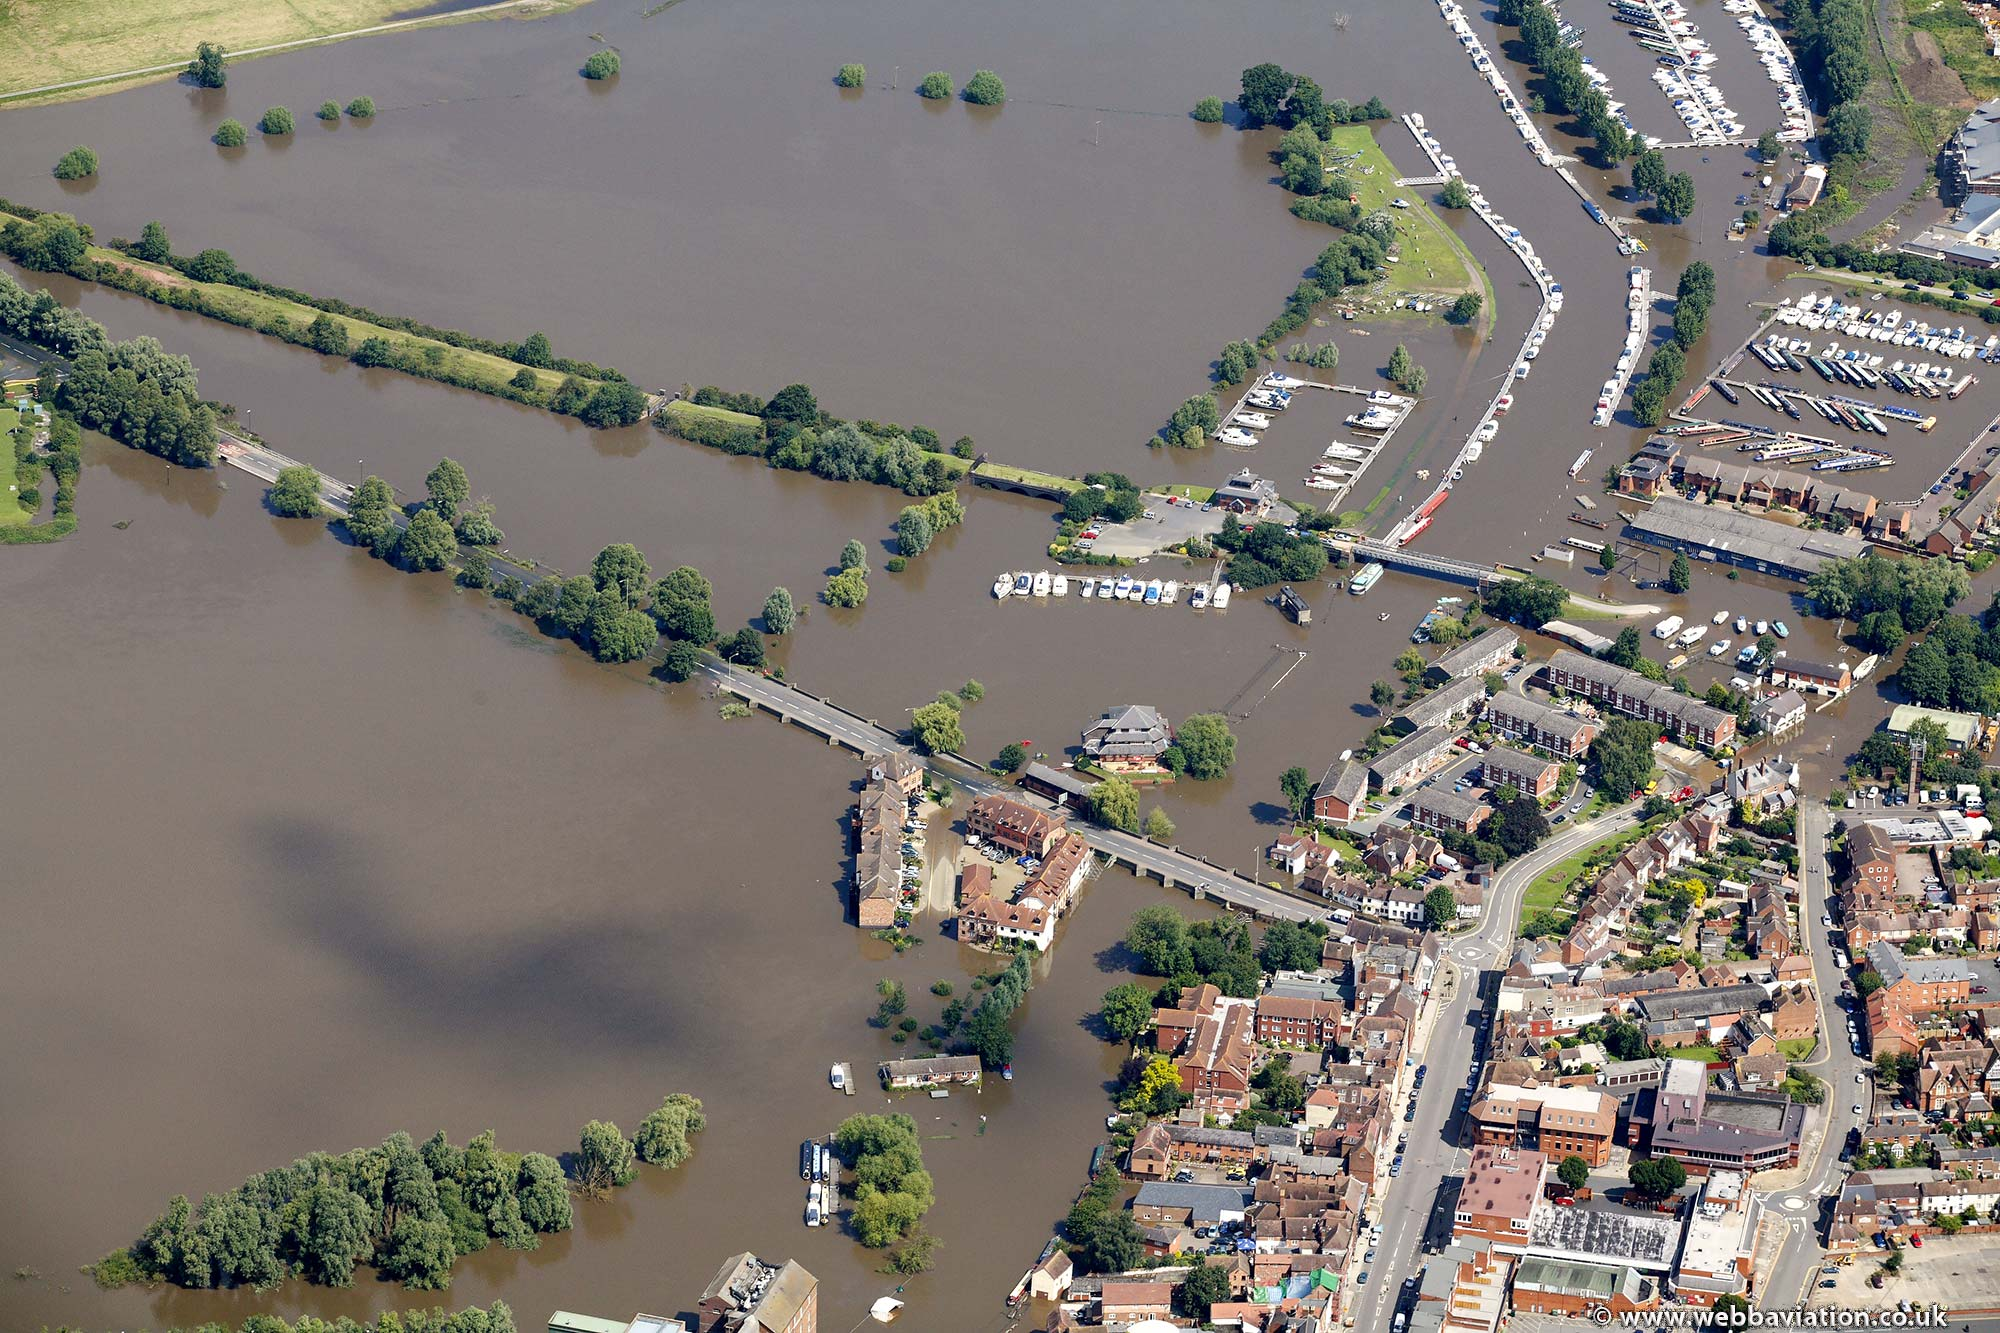 tewkesbury-flood-ba18363.jpg